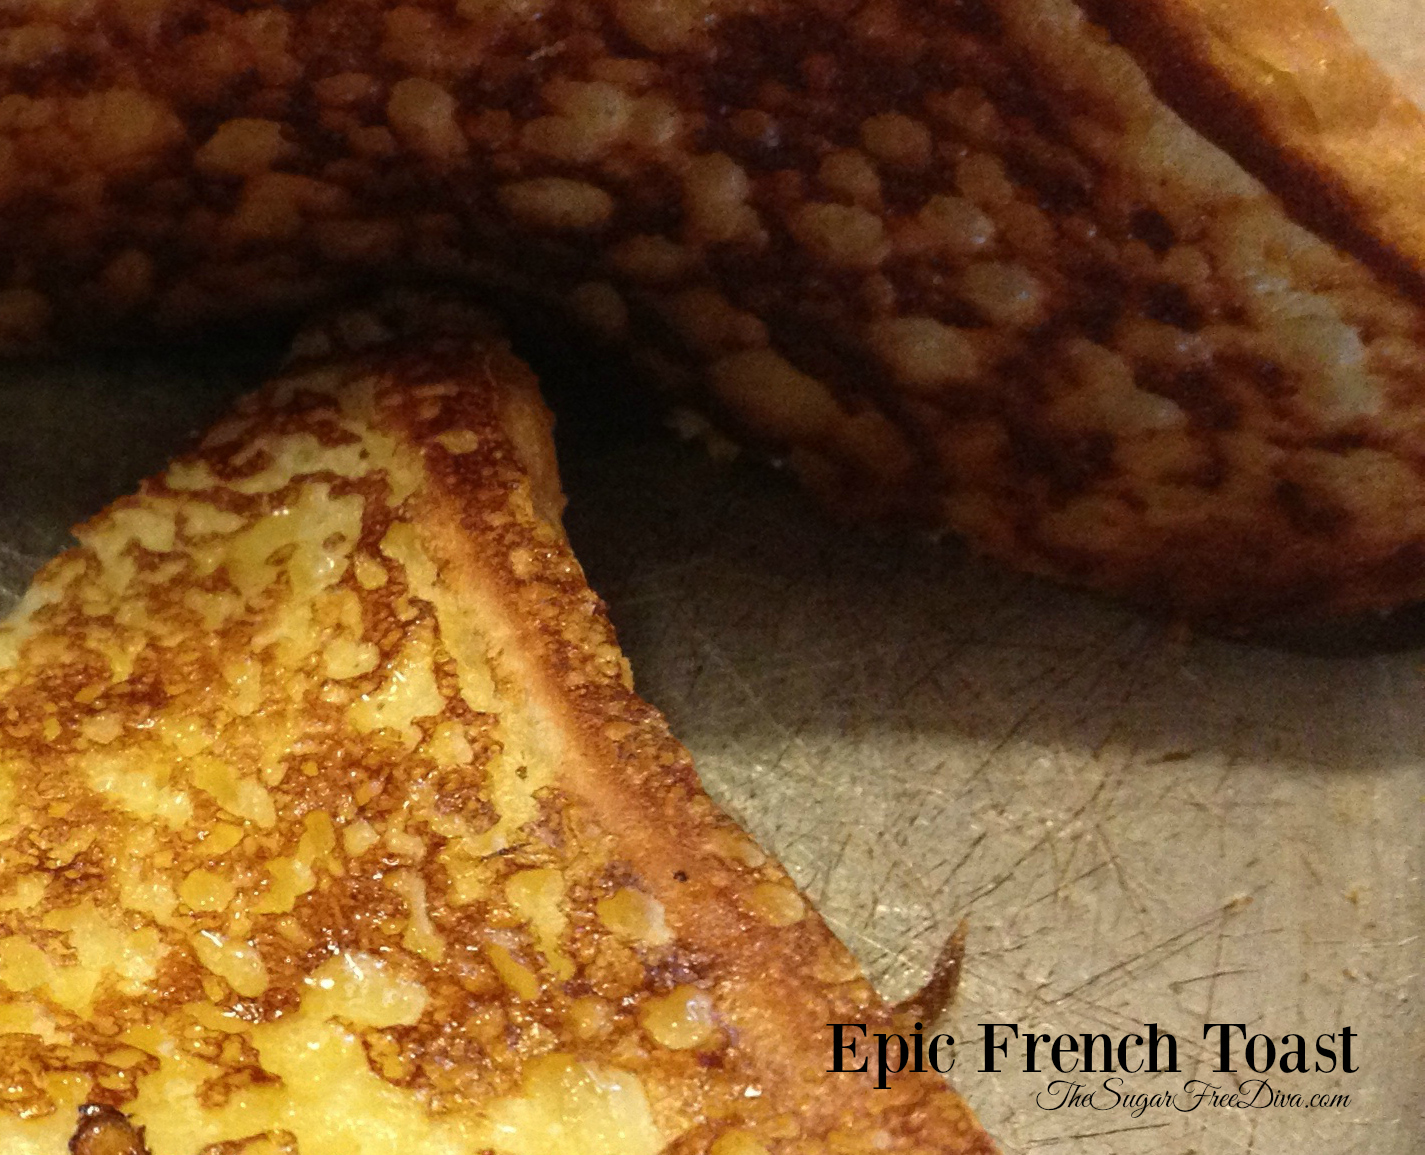 Epic French Toast!